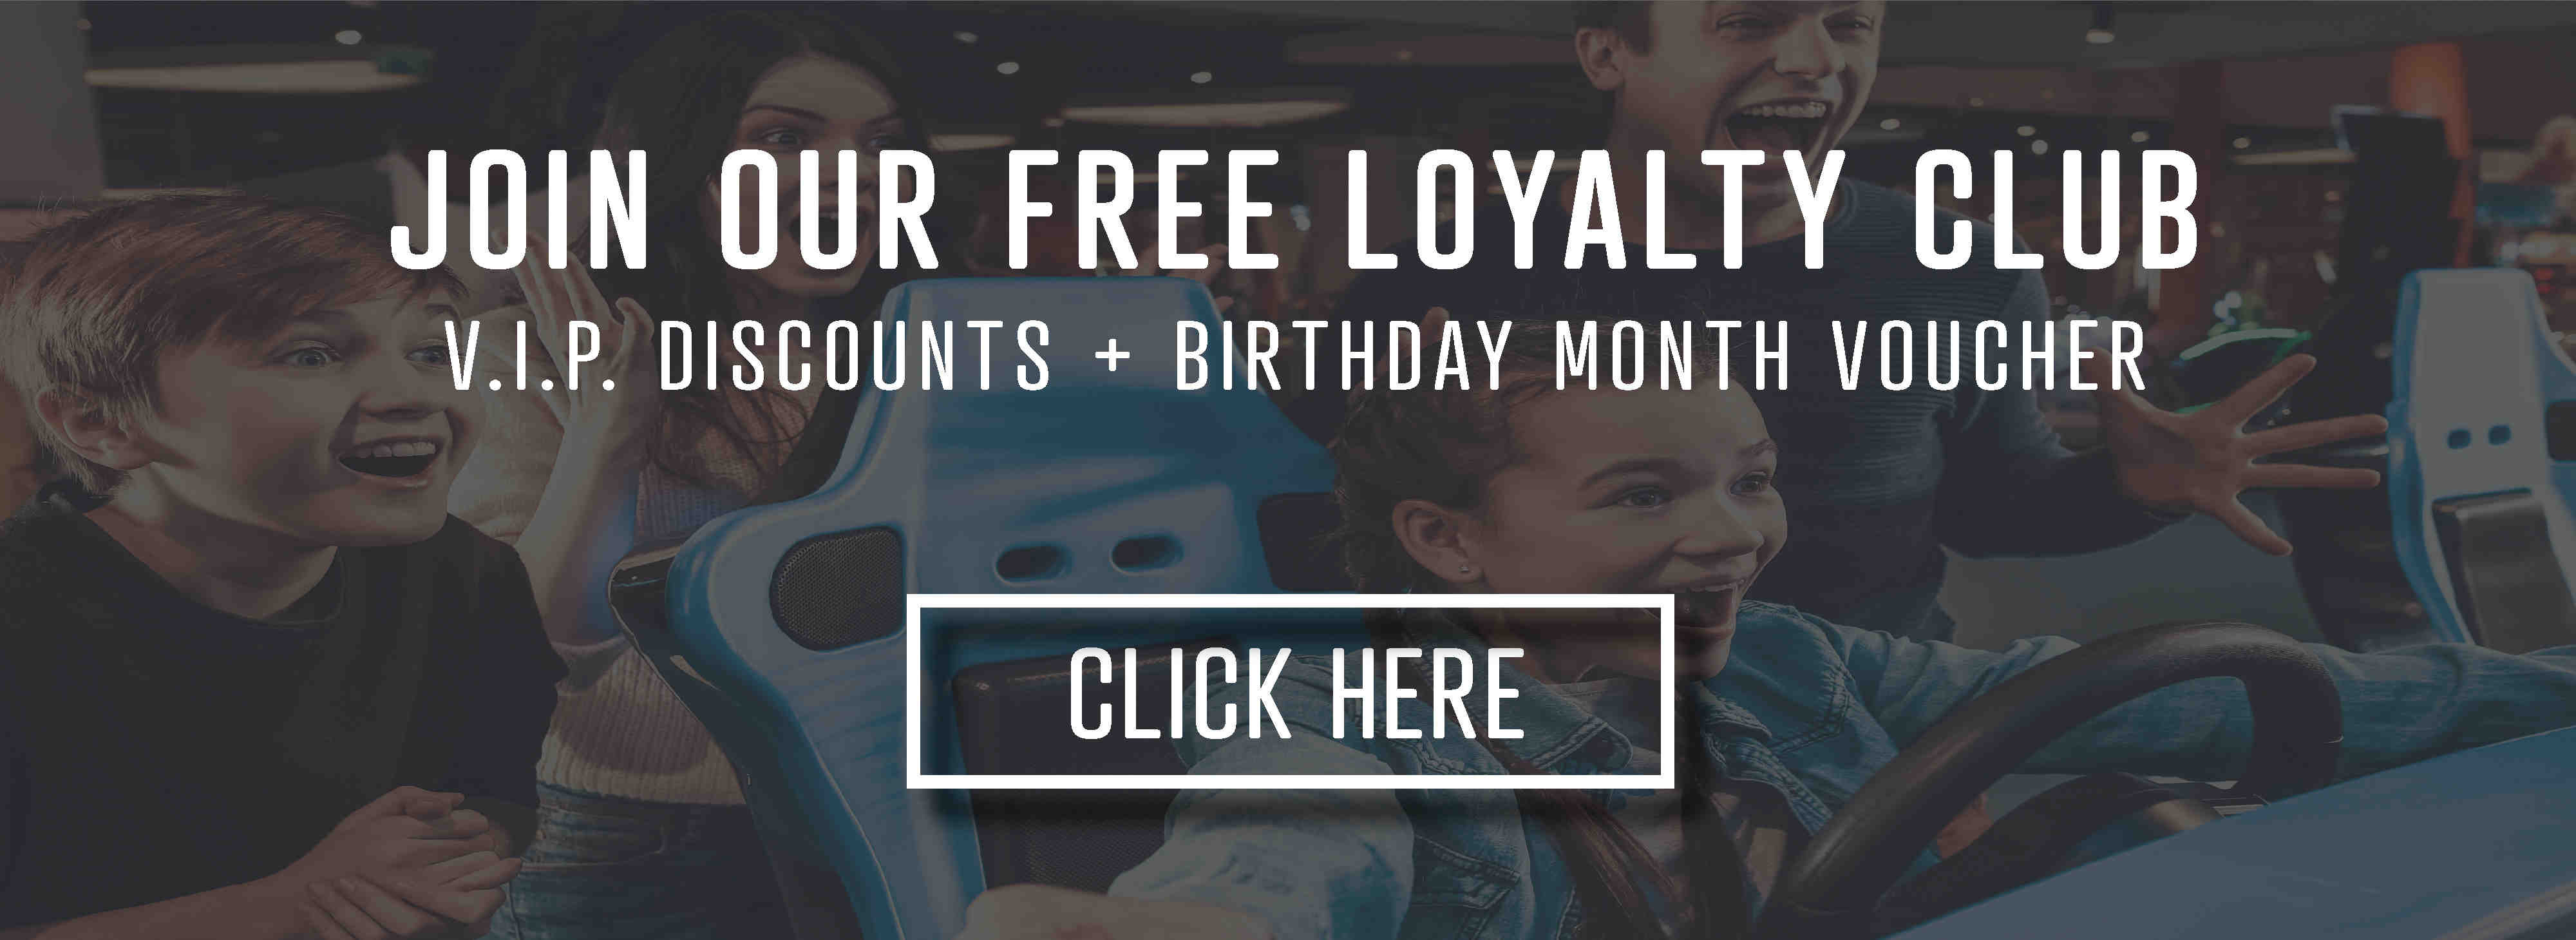 Join our free loyalty club - click here